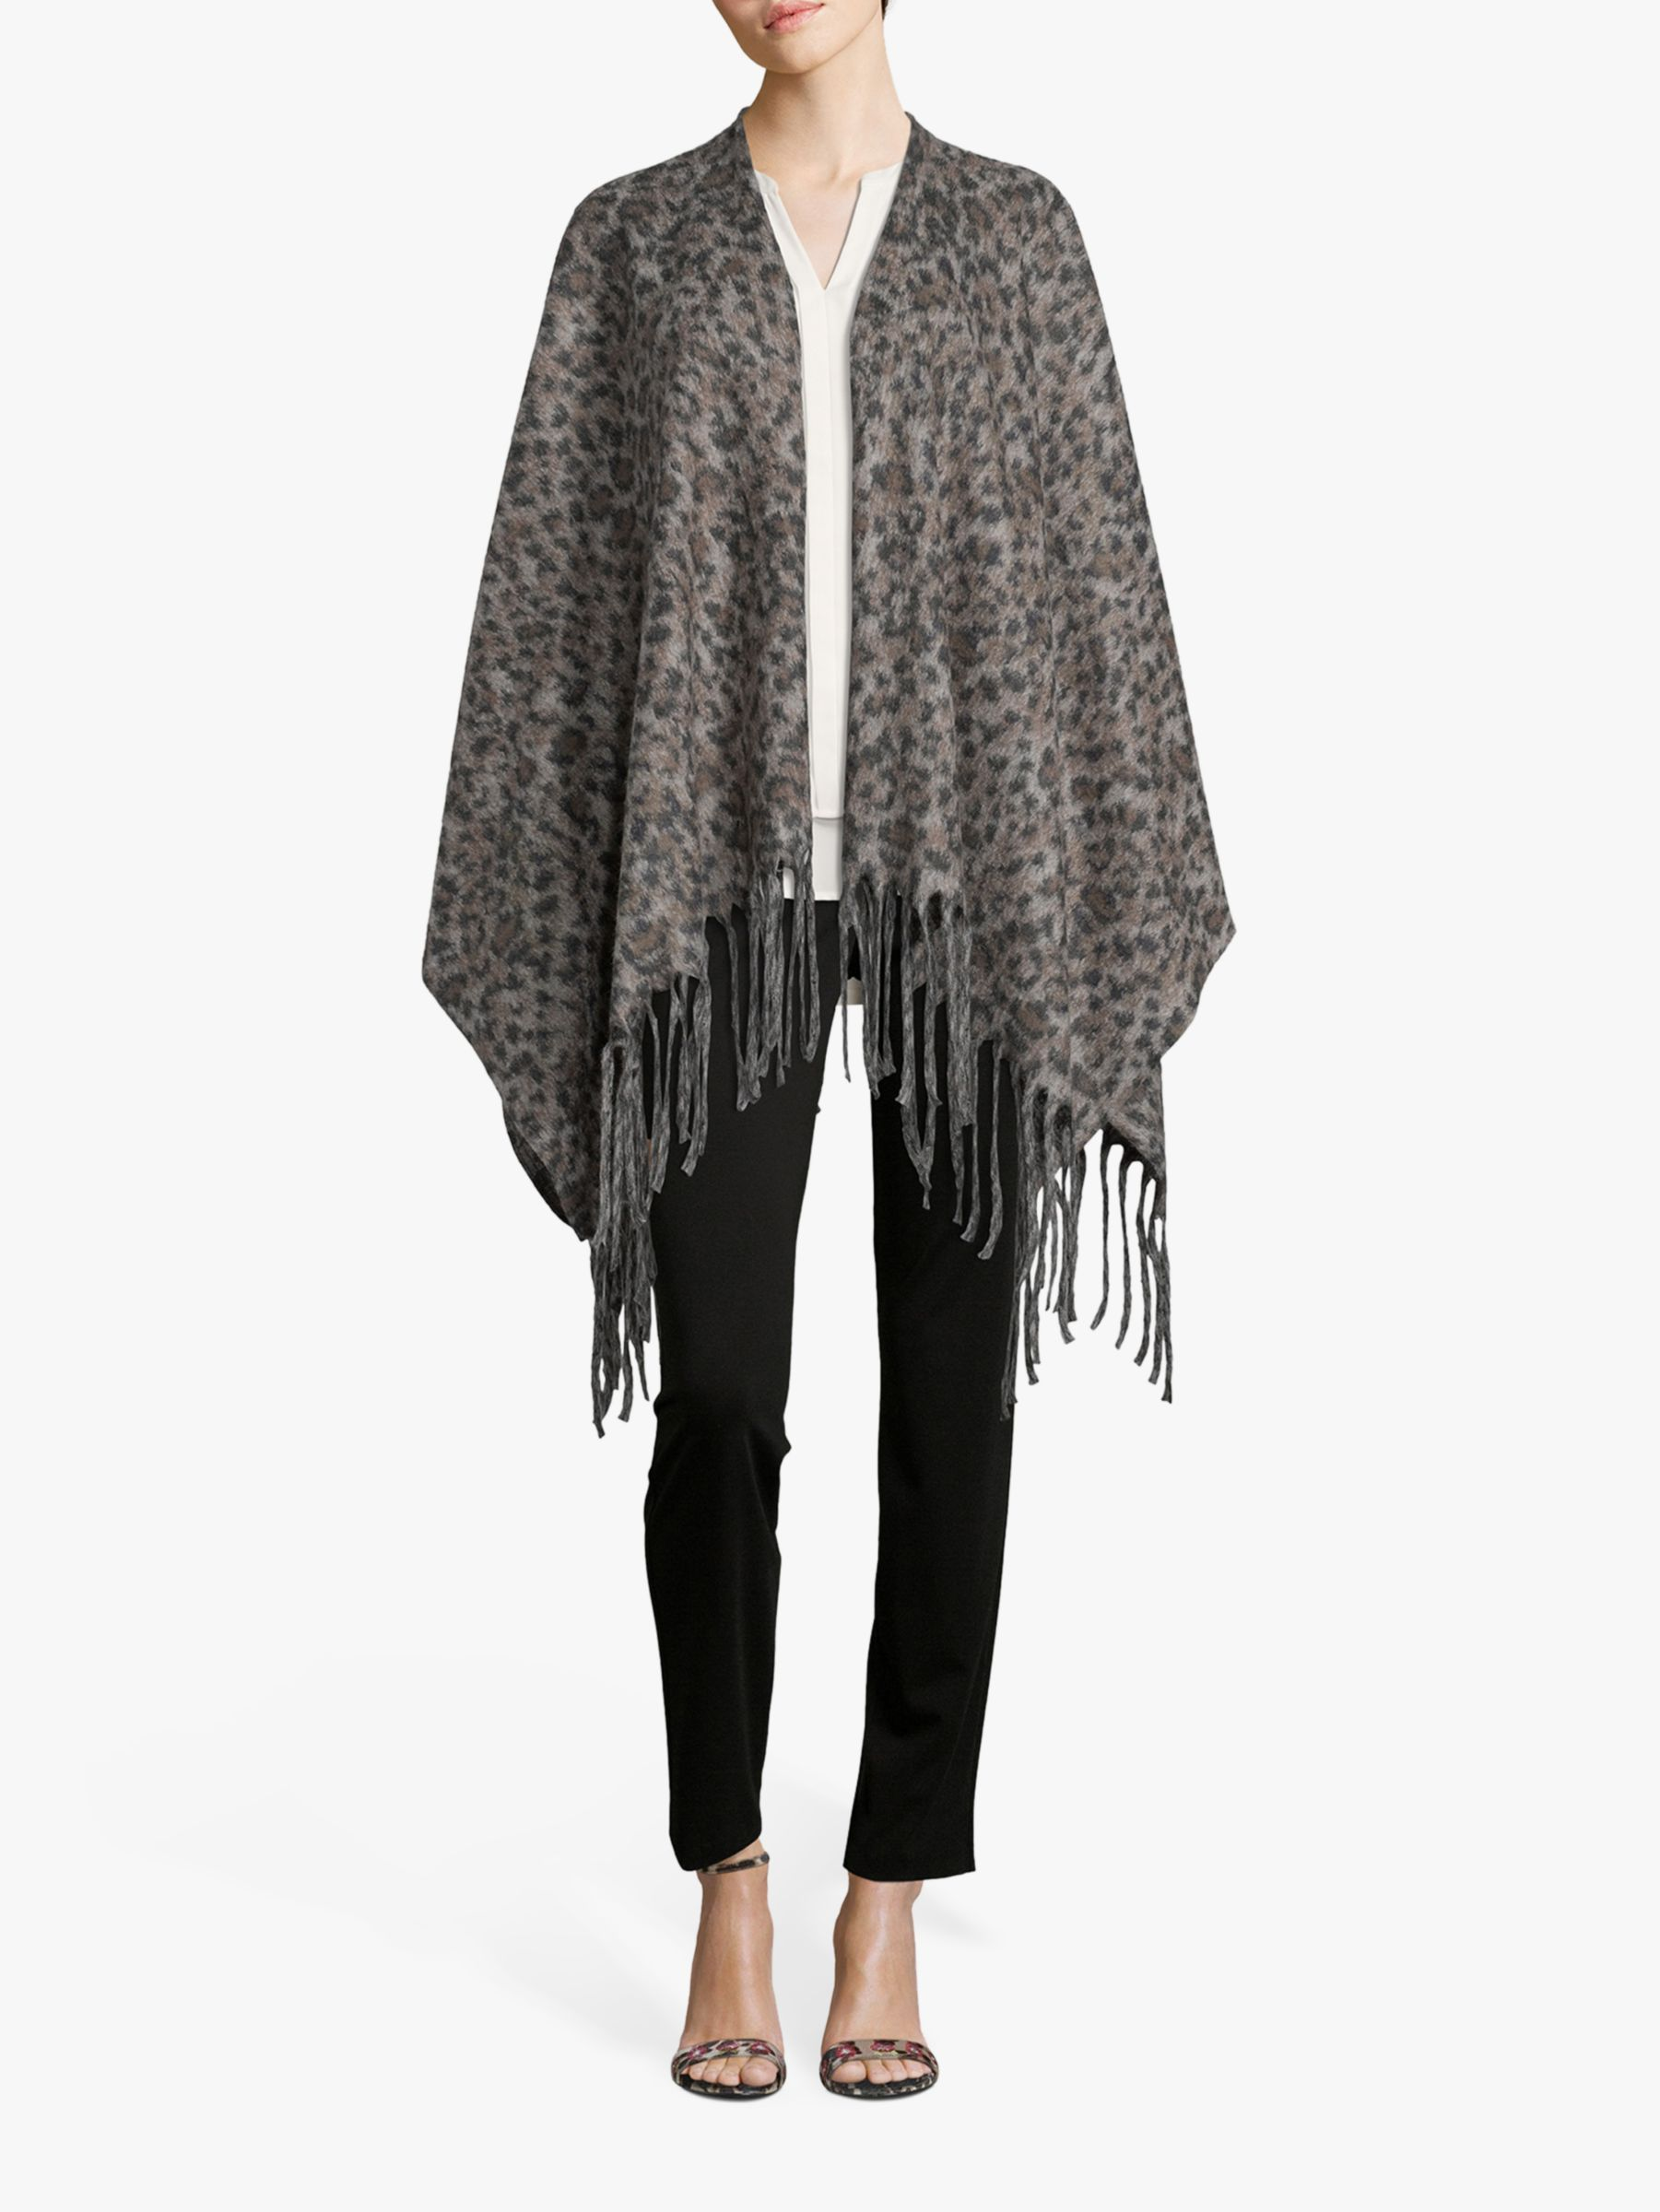 Betty Barclay Betty Barclay Animal Knitted Cape, Taupe/Black